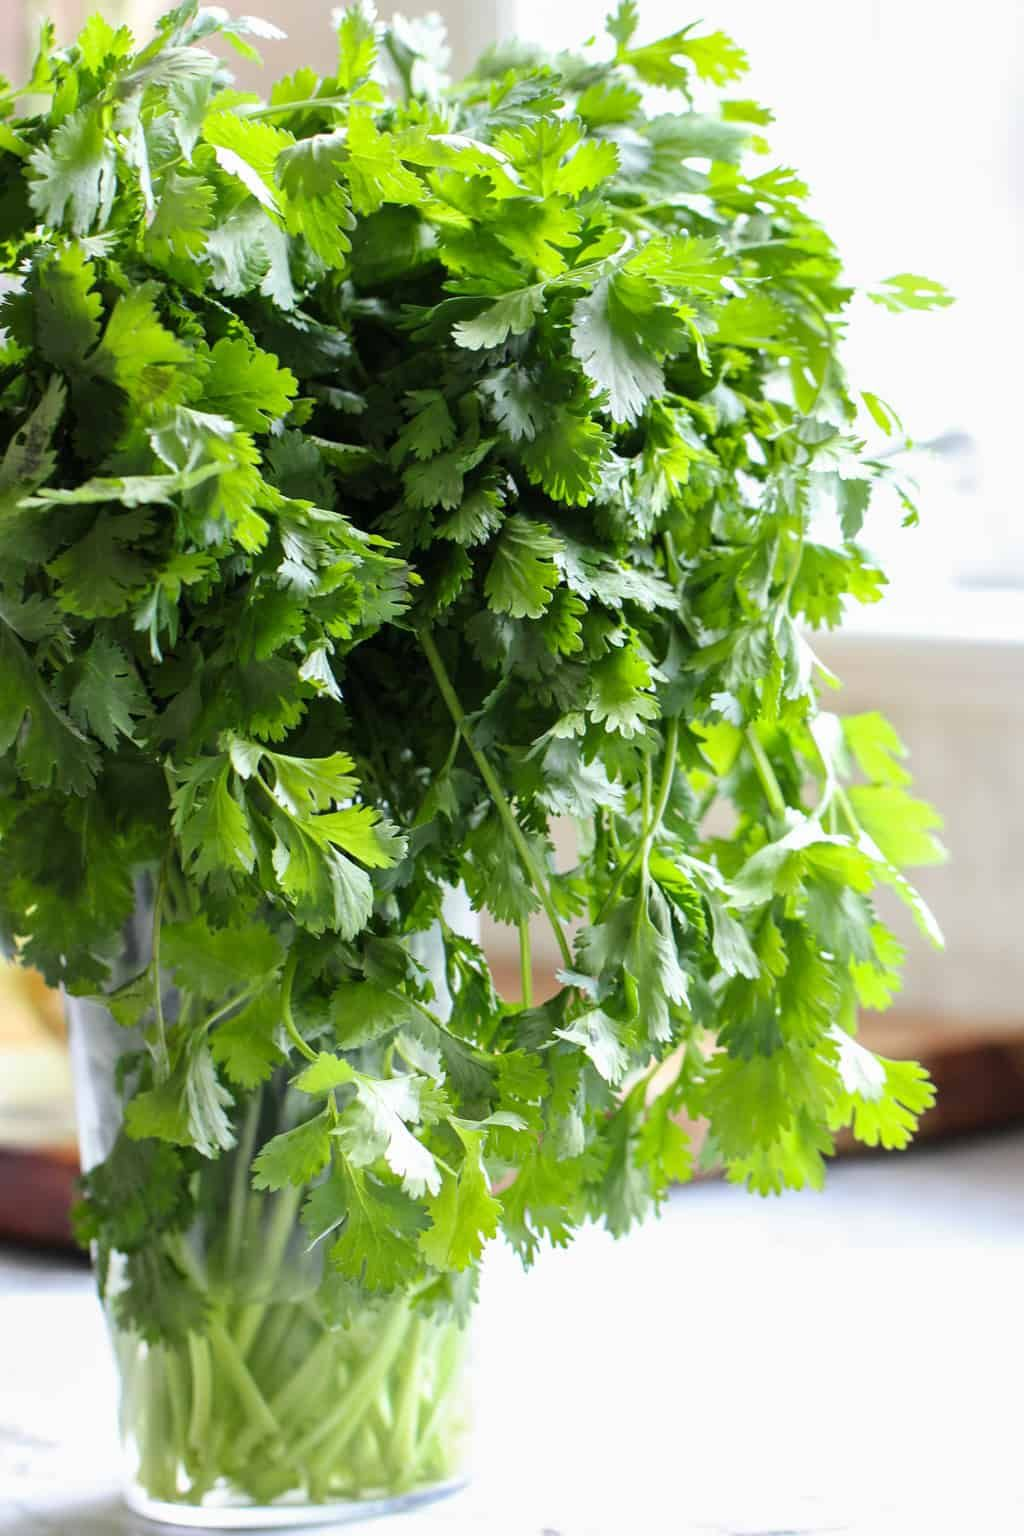 Fresh cilantro how to prep store ministry of curry